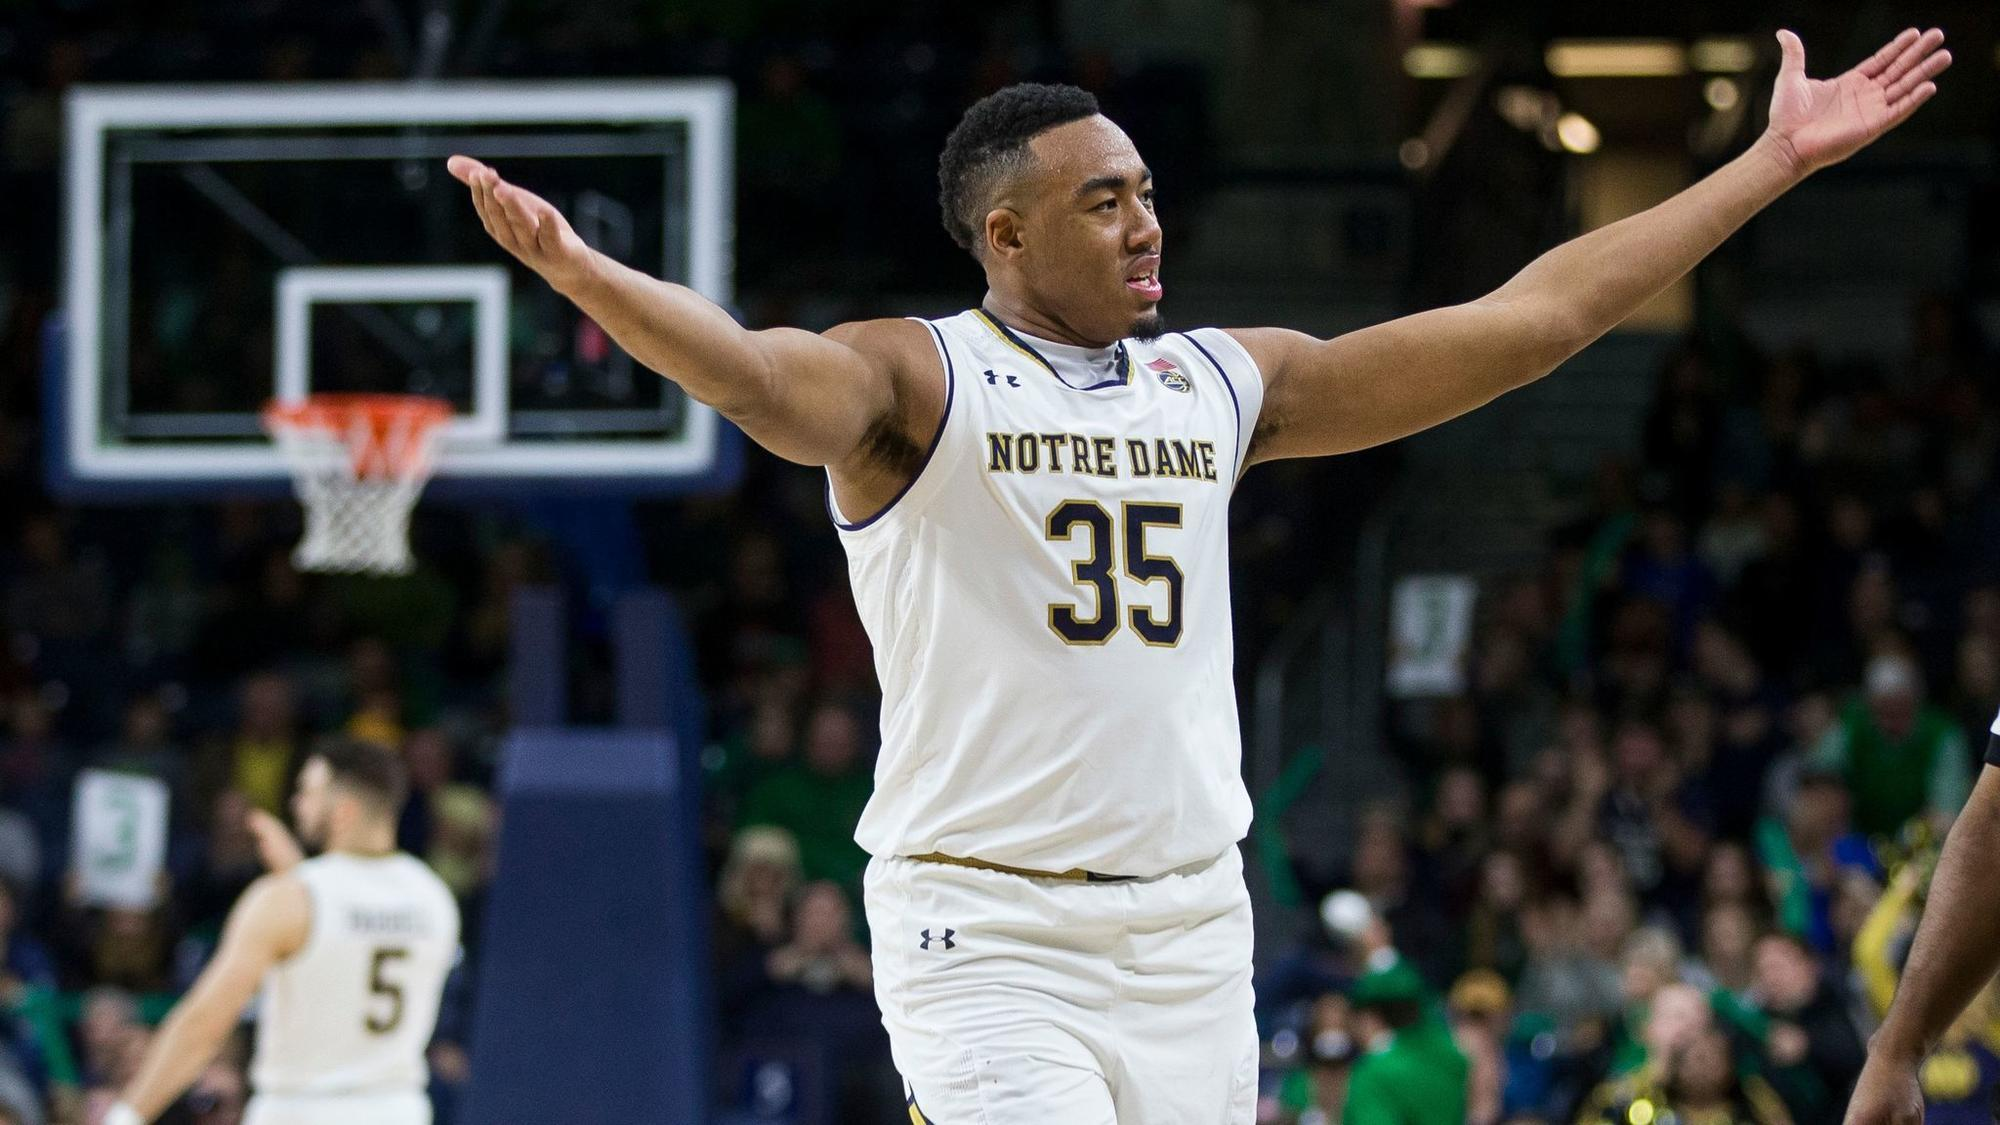 Notre Dame forward Bonzie Colson out 8 weeks with foot fracture - Chicago Tribune